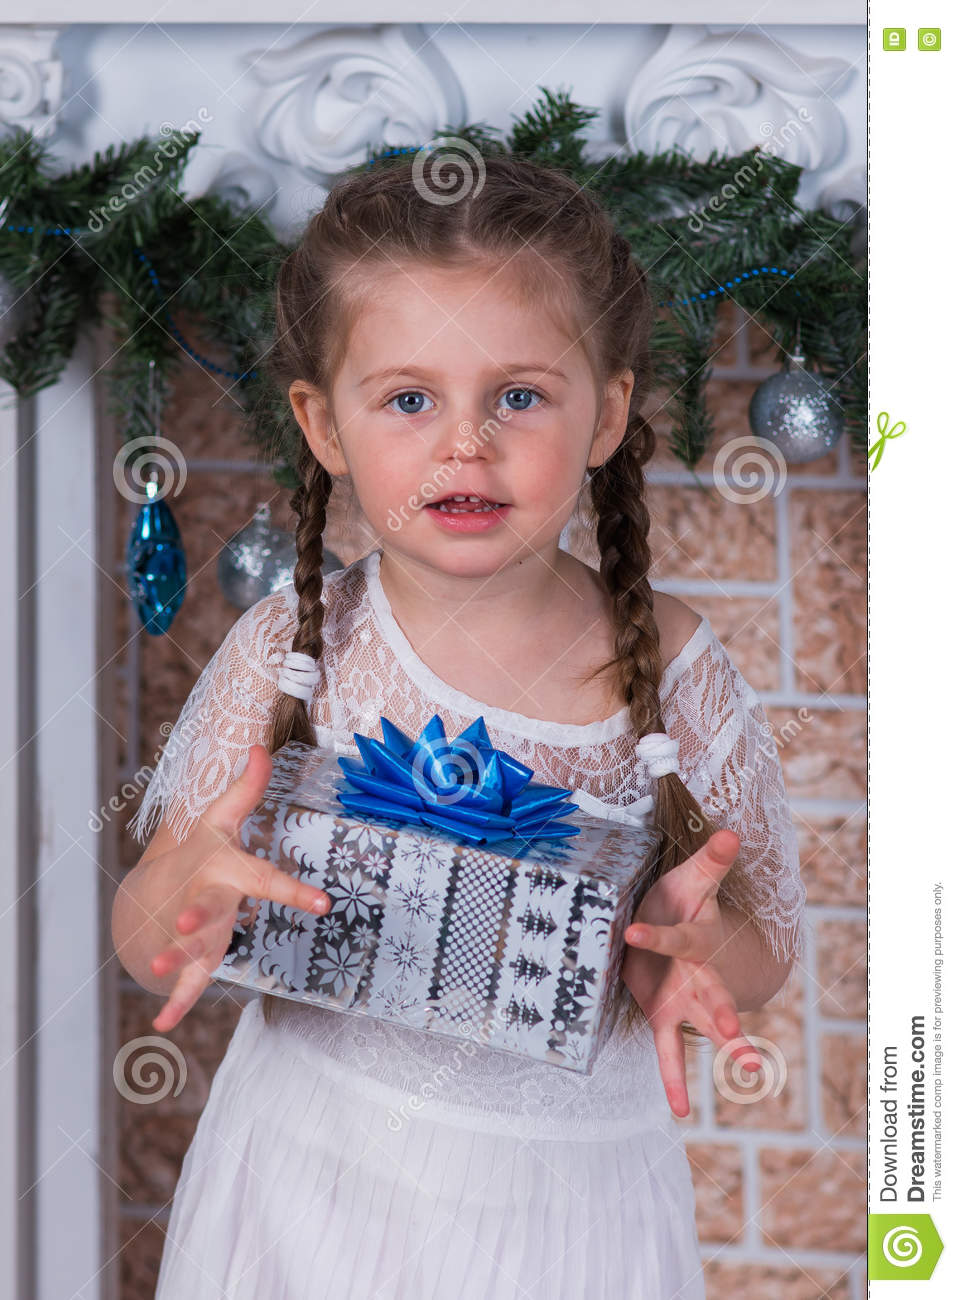 Girl with two pigtails with a gift in a box in the New Years holiday